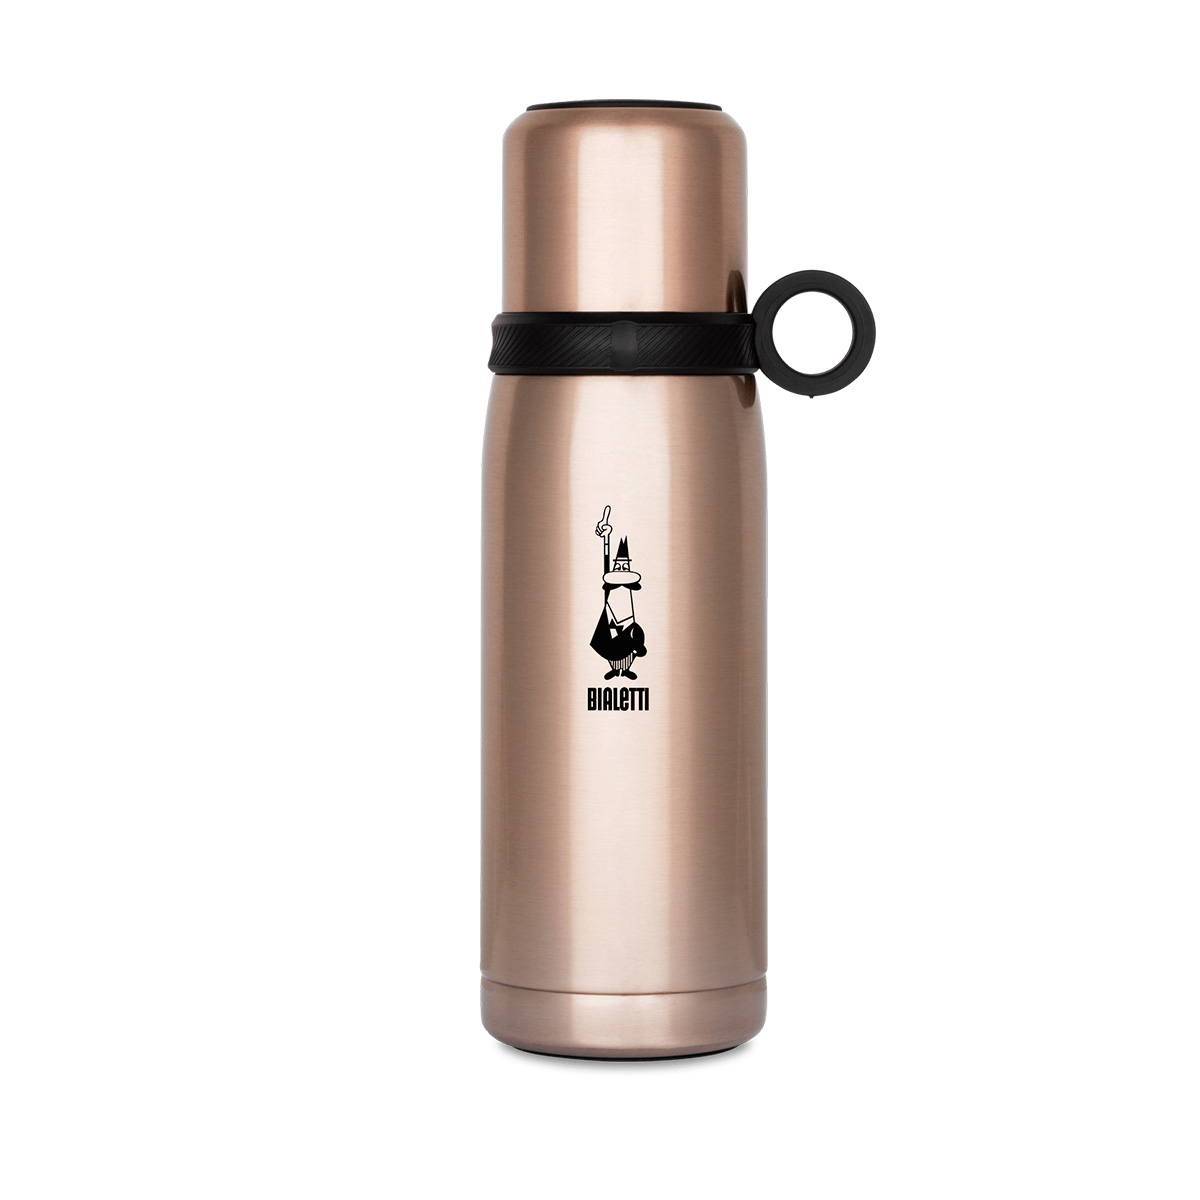 Thermo rose gold de acero inoxidable Bialetti